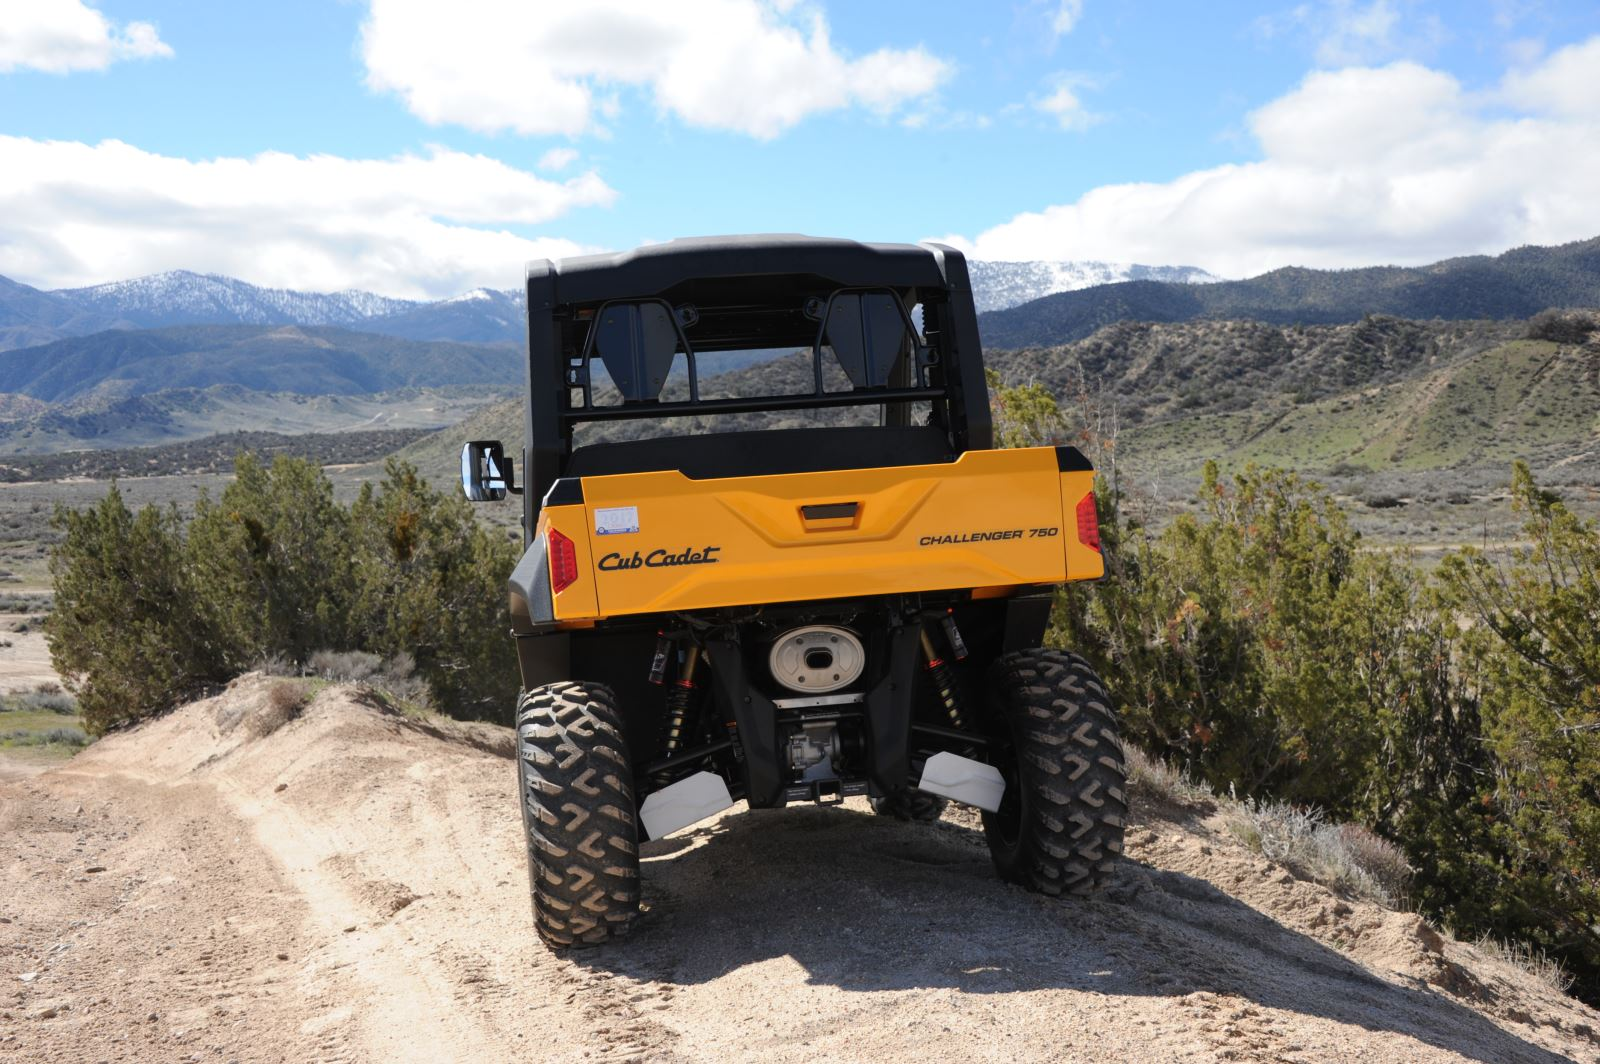 Cub Cadet Expands Utility Vehicle Line With New Challenger Models Utv Transmission Schematic Accessory Rack Tubes